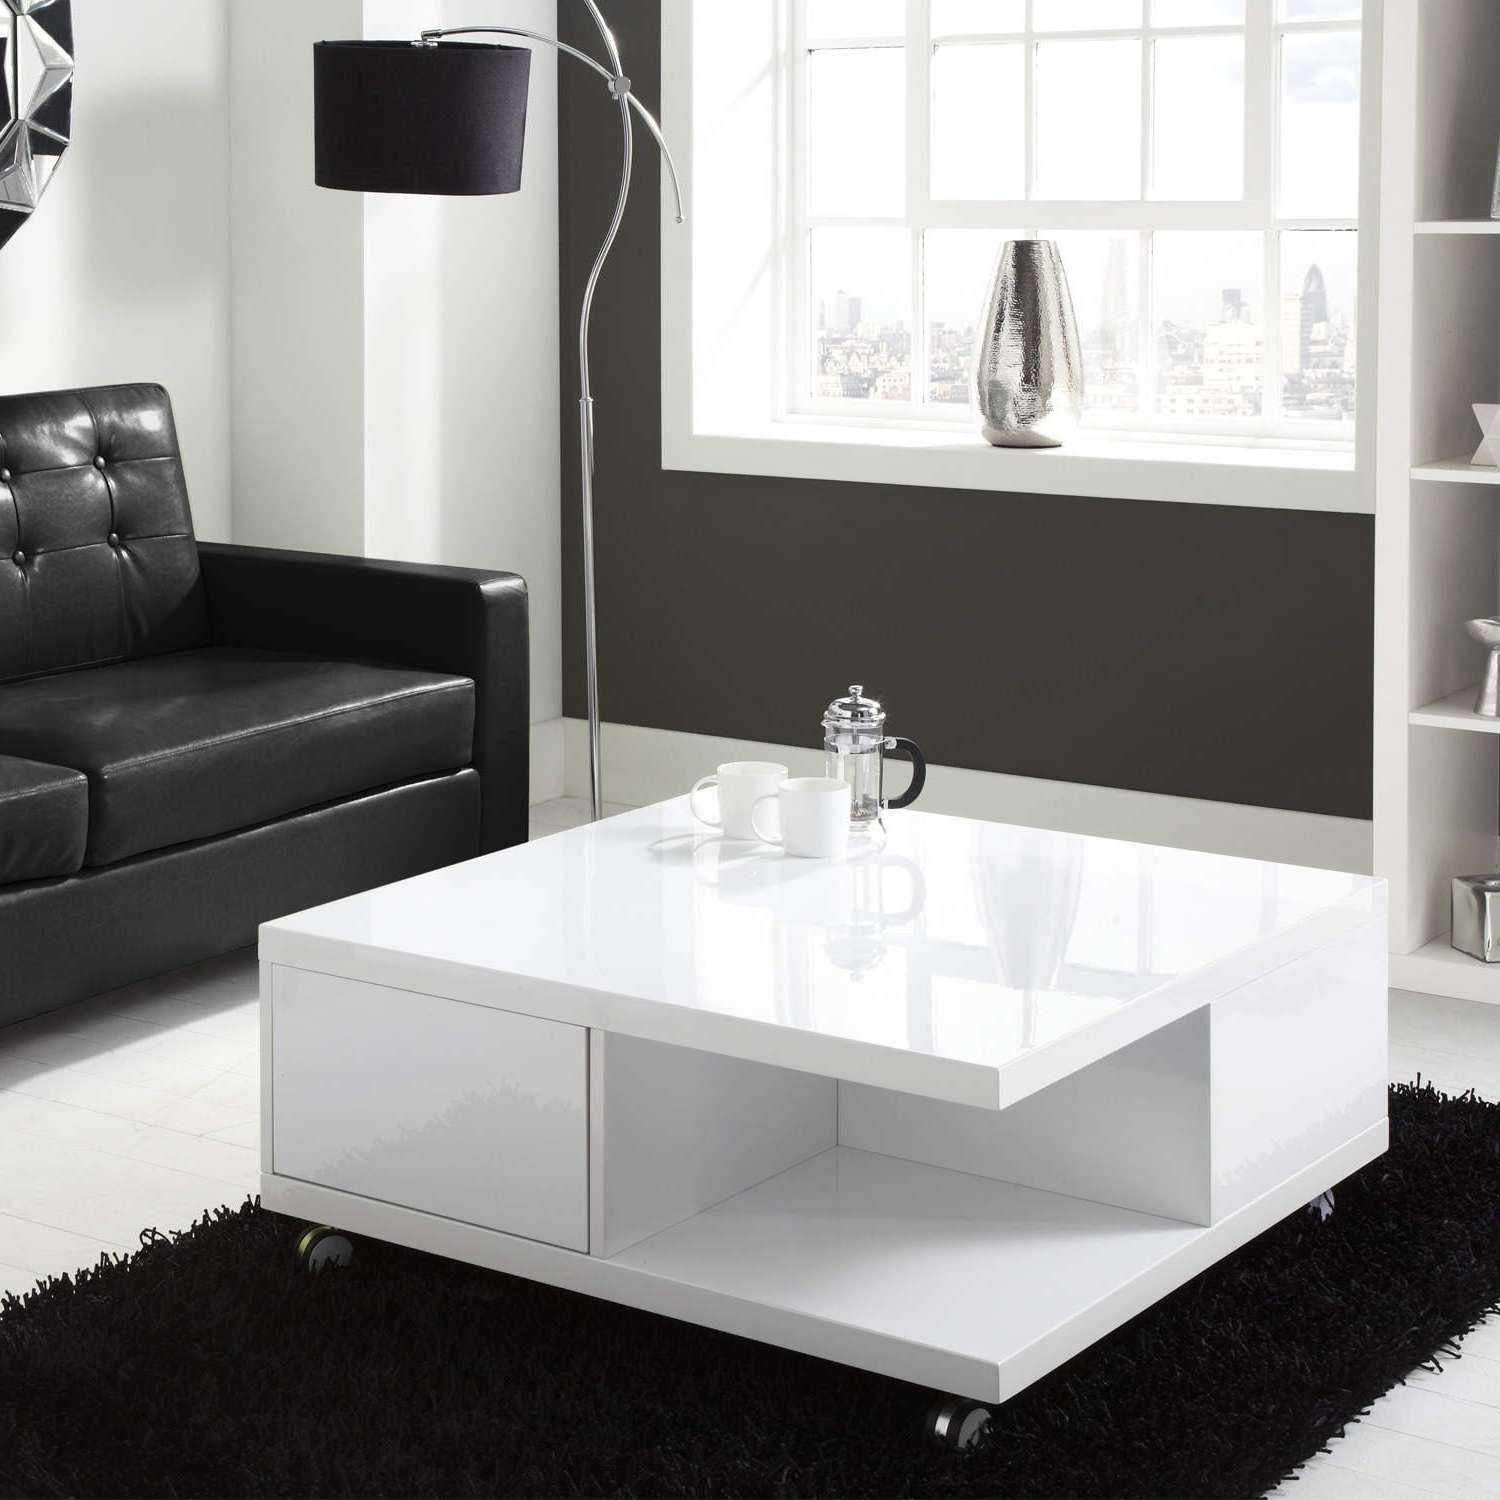 Coffee Tables : Compact White Coffee Tables Canada High Gloss Throughout Popular White High Gloss Coffee Tables (View 13 of 20)